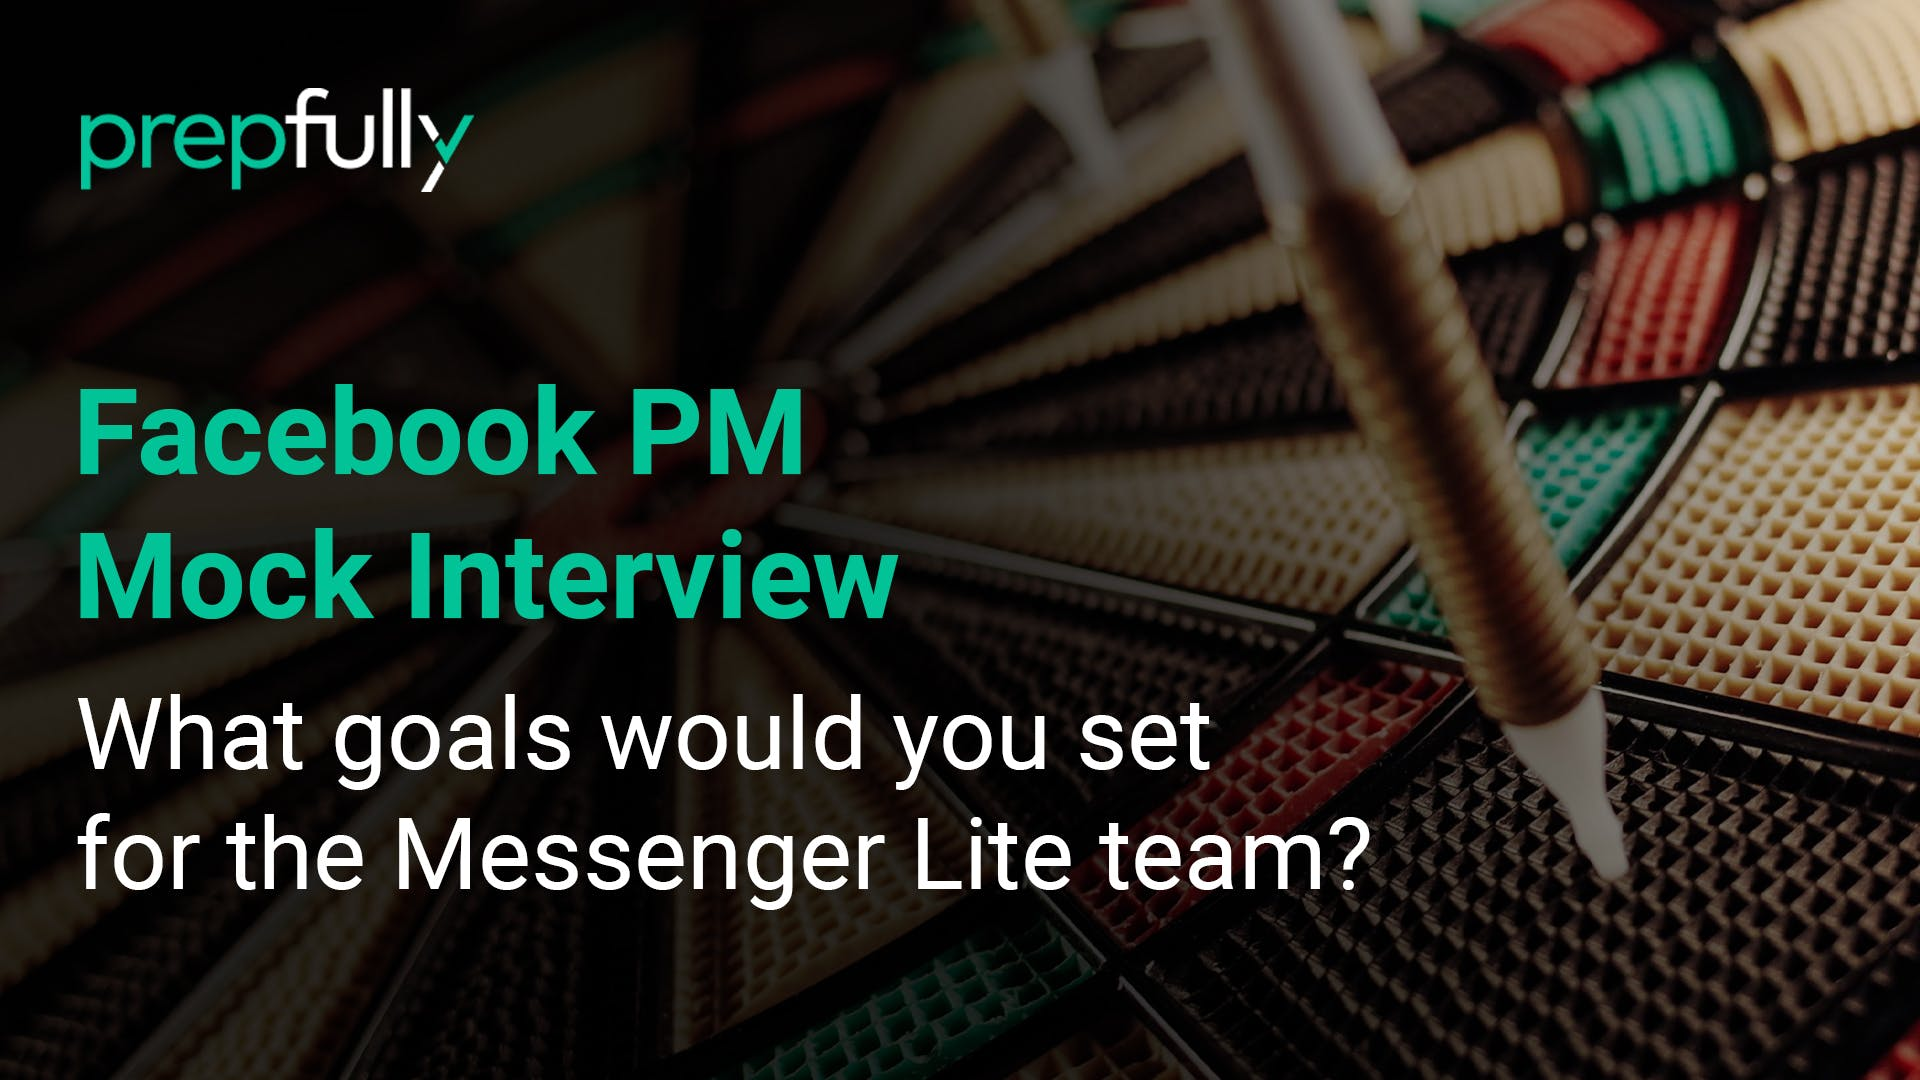 FB-PM-Mock-interview-what-goals-would-you-set-for-the-messenger-lite-team